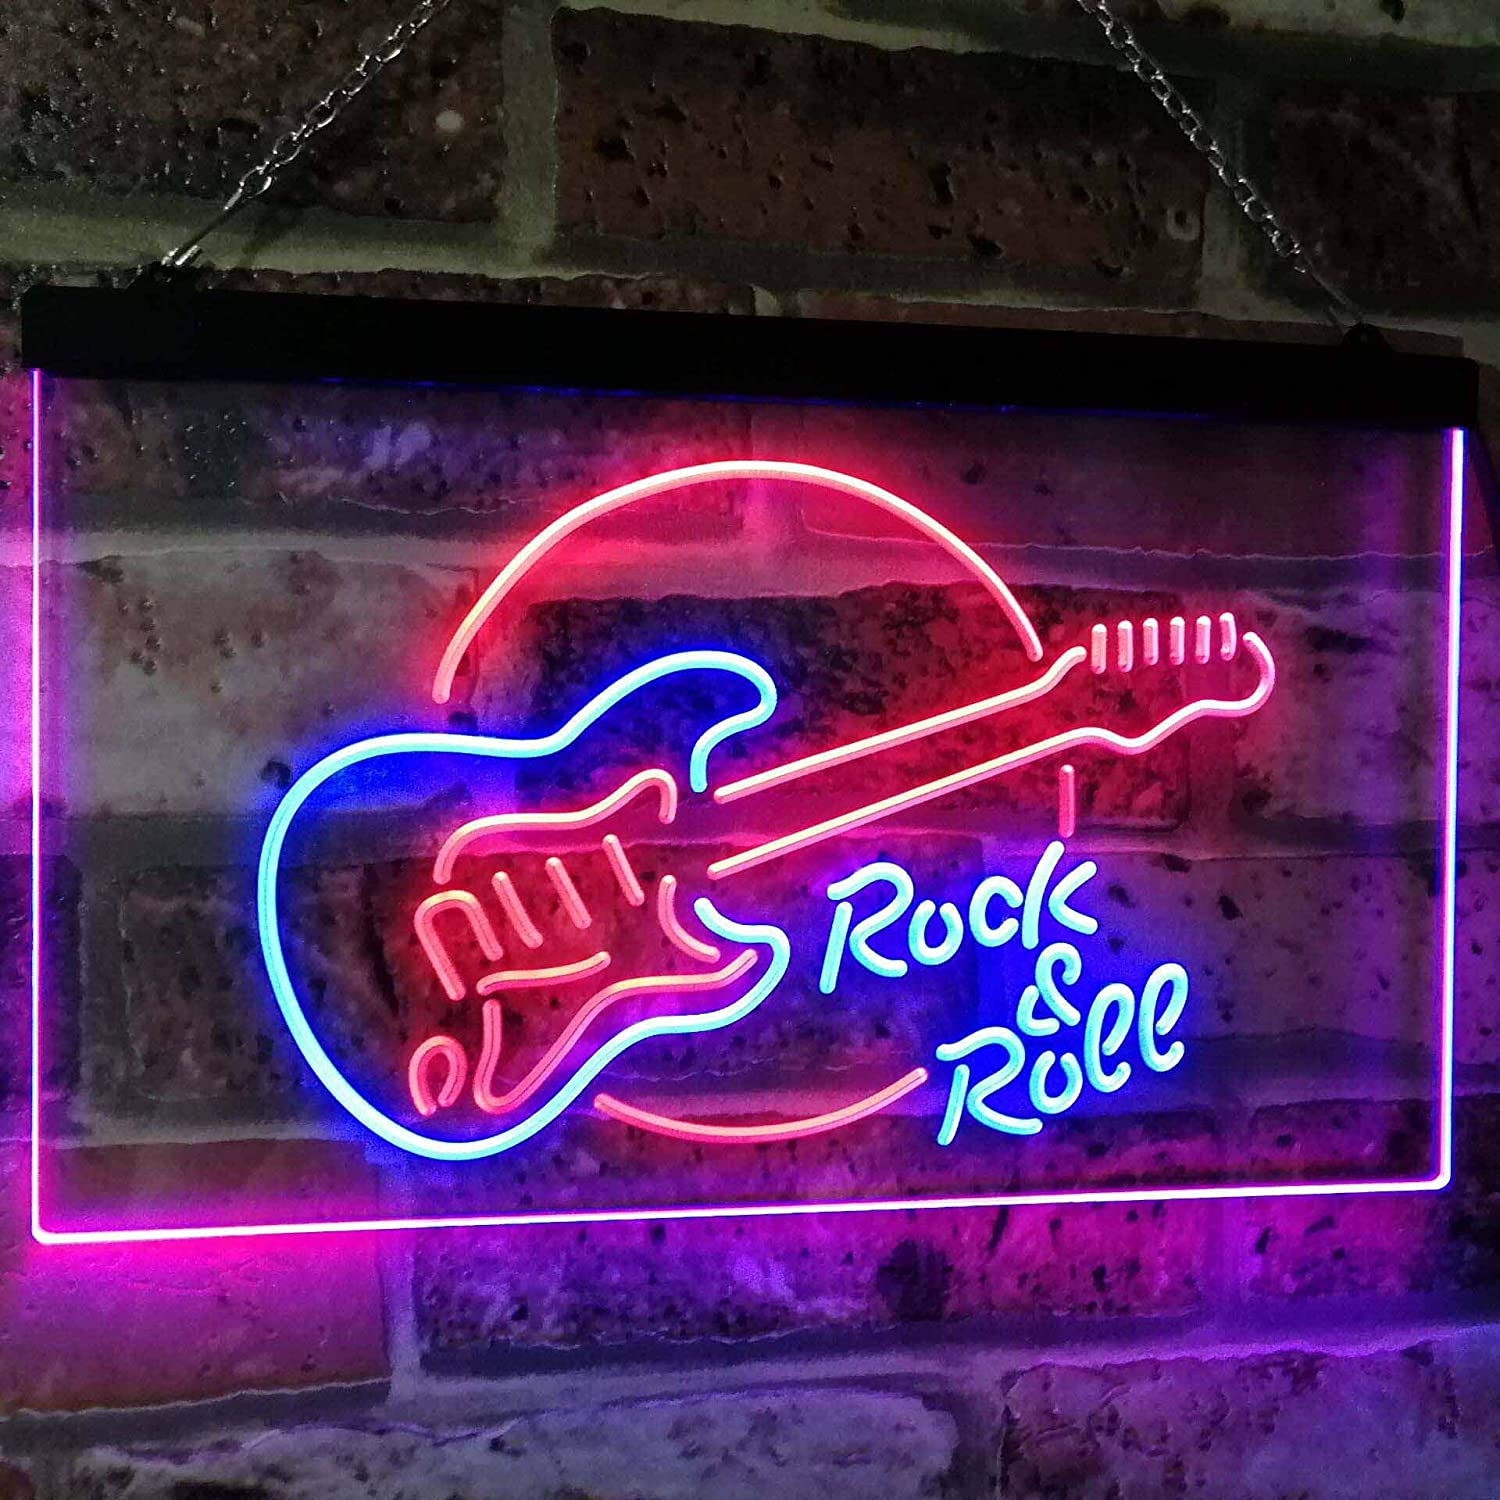 AdvpPro 2C Rock & Roll Electric Guitar Band Room Music Dual Color LED Neon Sign Red & Yellow 300mm x 210mm st6s32-i2303-ry ADVPRO